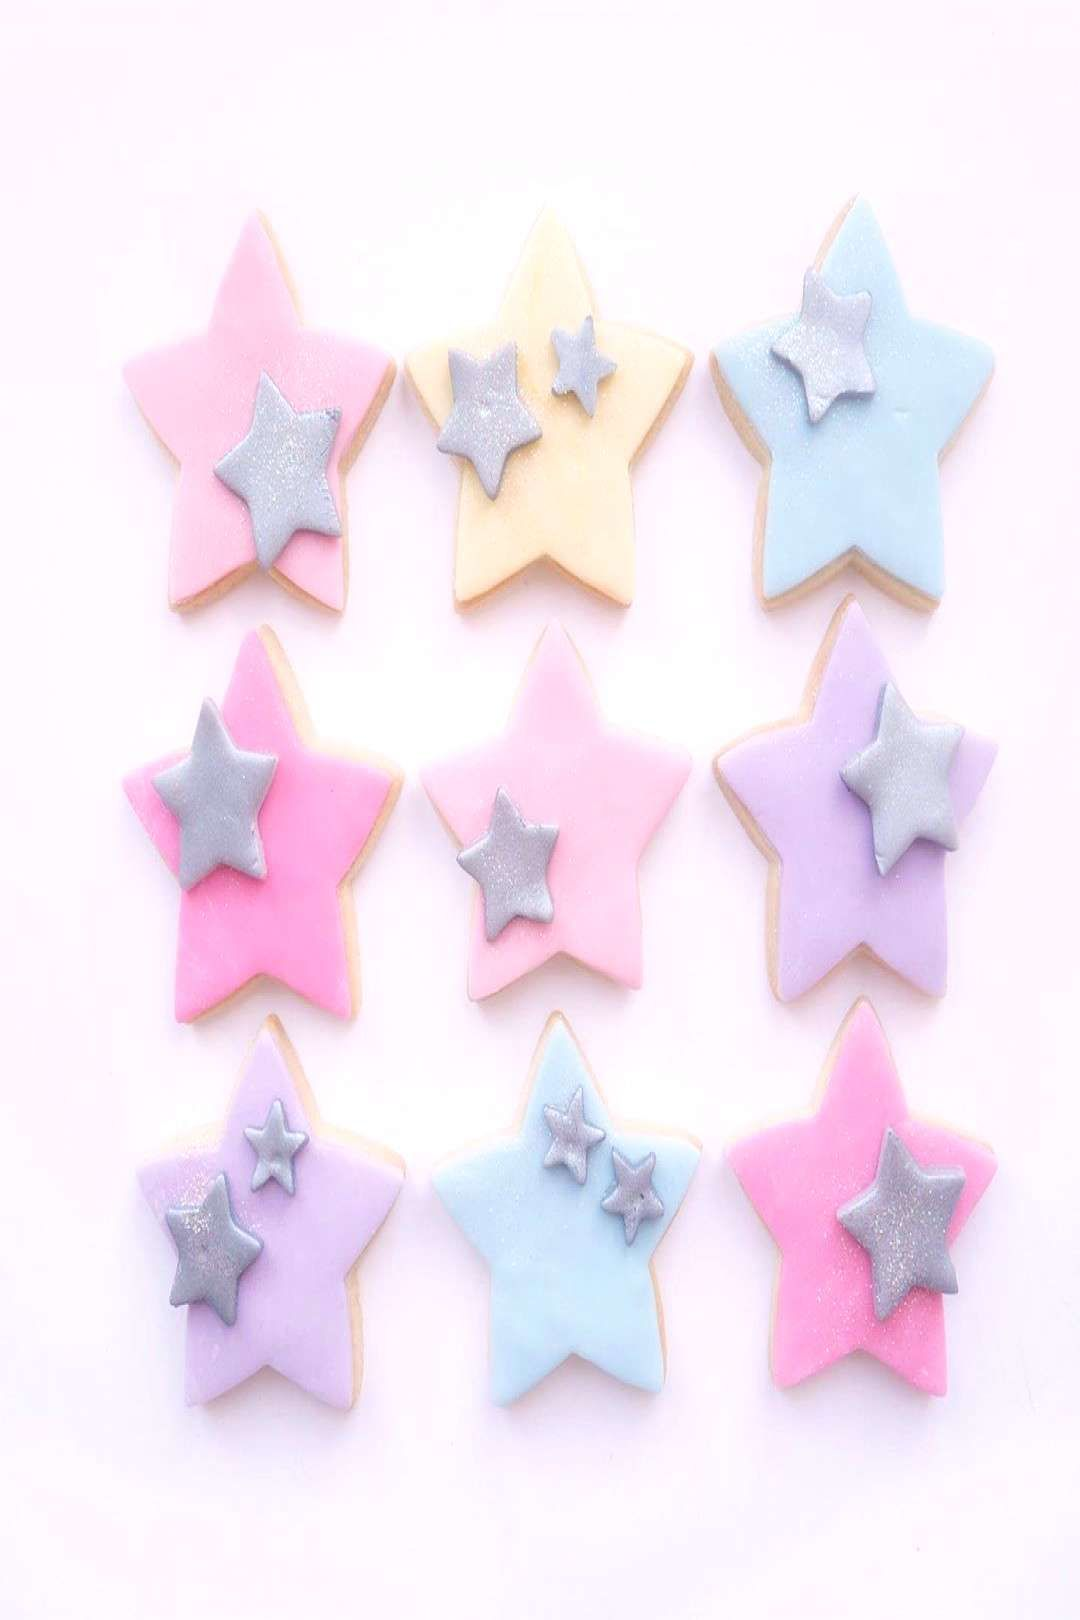 #christmas #across #stars #arent #swipe #just #food #for #the #3rd #b Star's aren't just for Christmas . . . Swipe across for the 3rd bYou can find Food gifts and more on our website.Star's aren't just for Christmas . . . Swipe across for the 3rd b